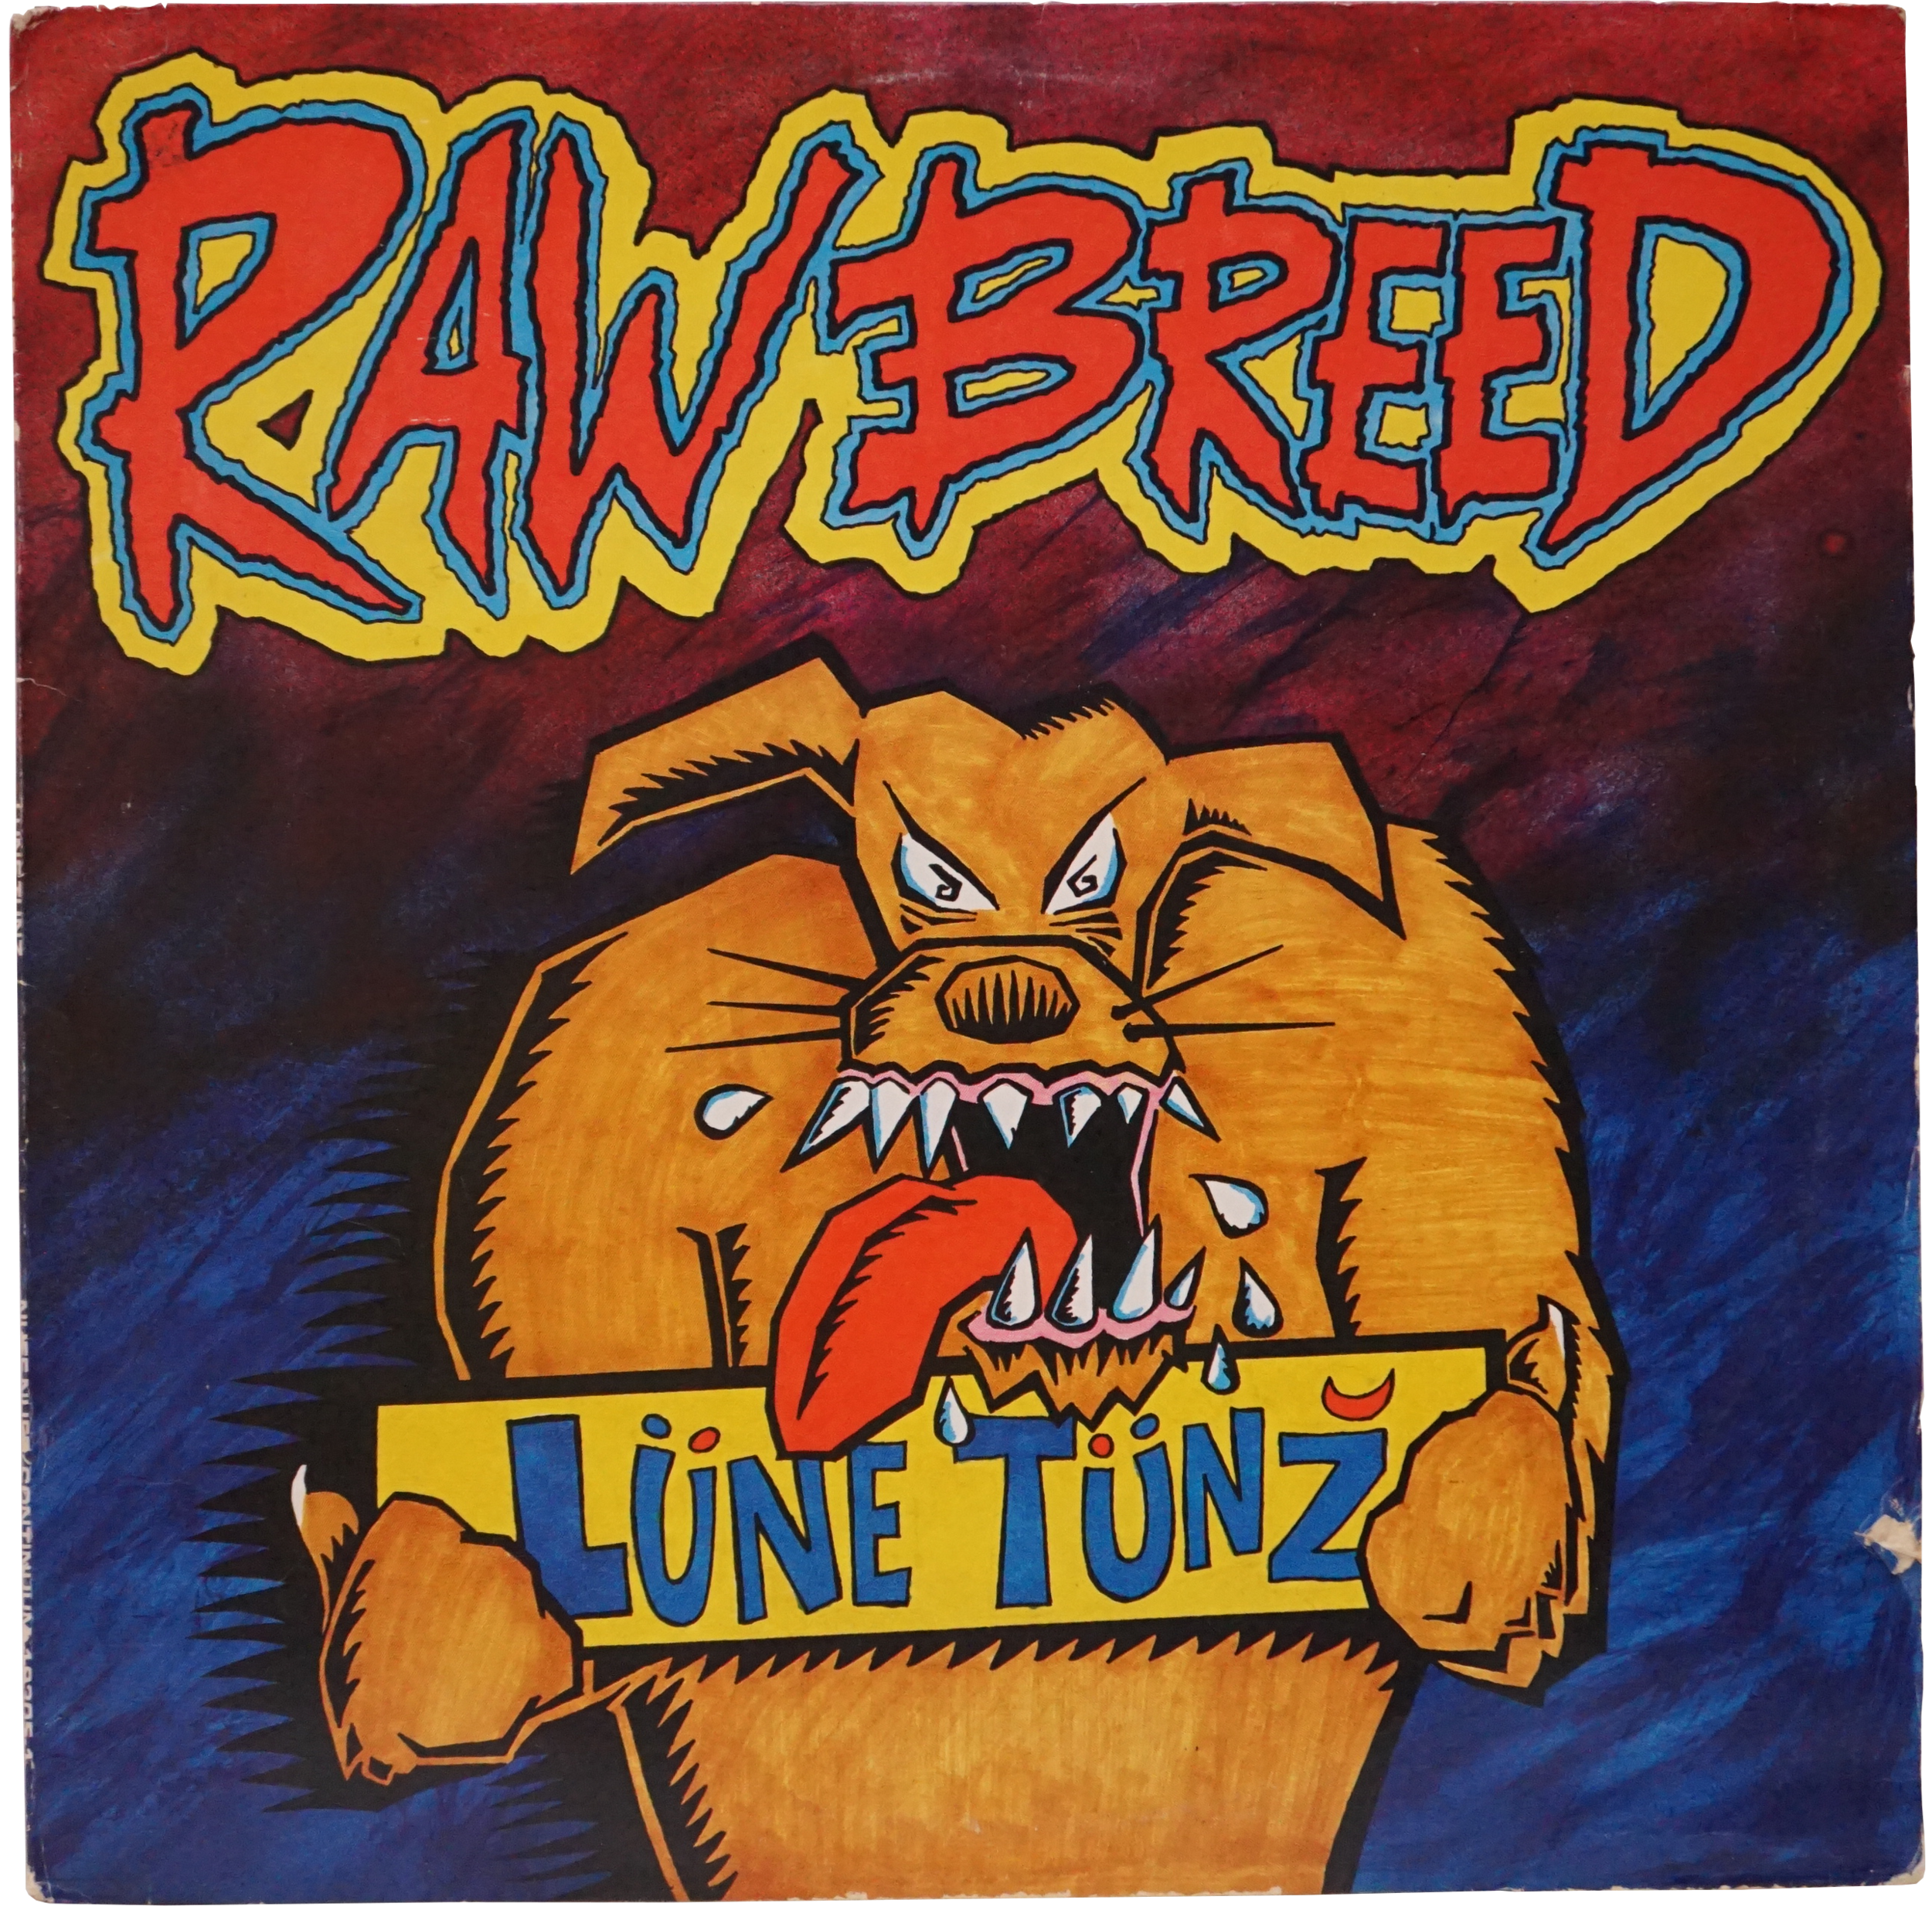 WLWLTDOO-1993-LP-RAW_BREED-LUNE_TUNZ-FRONT-193051.png